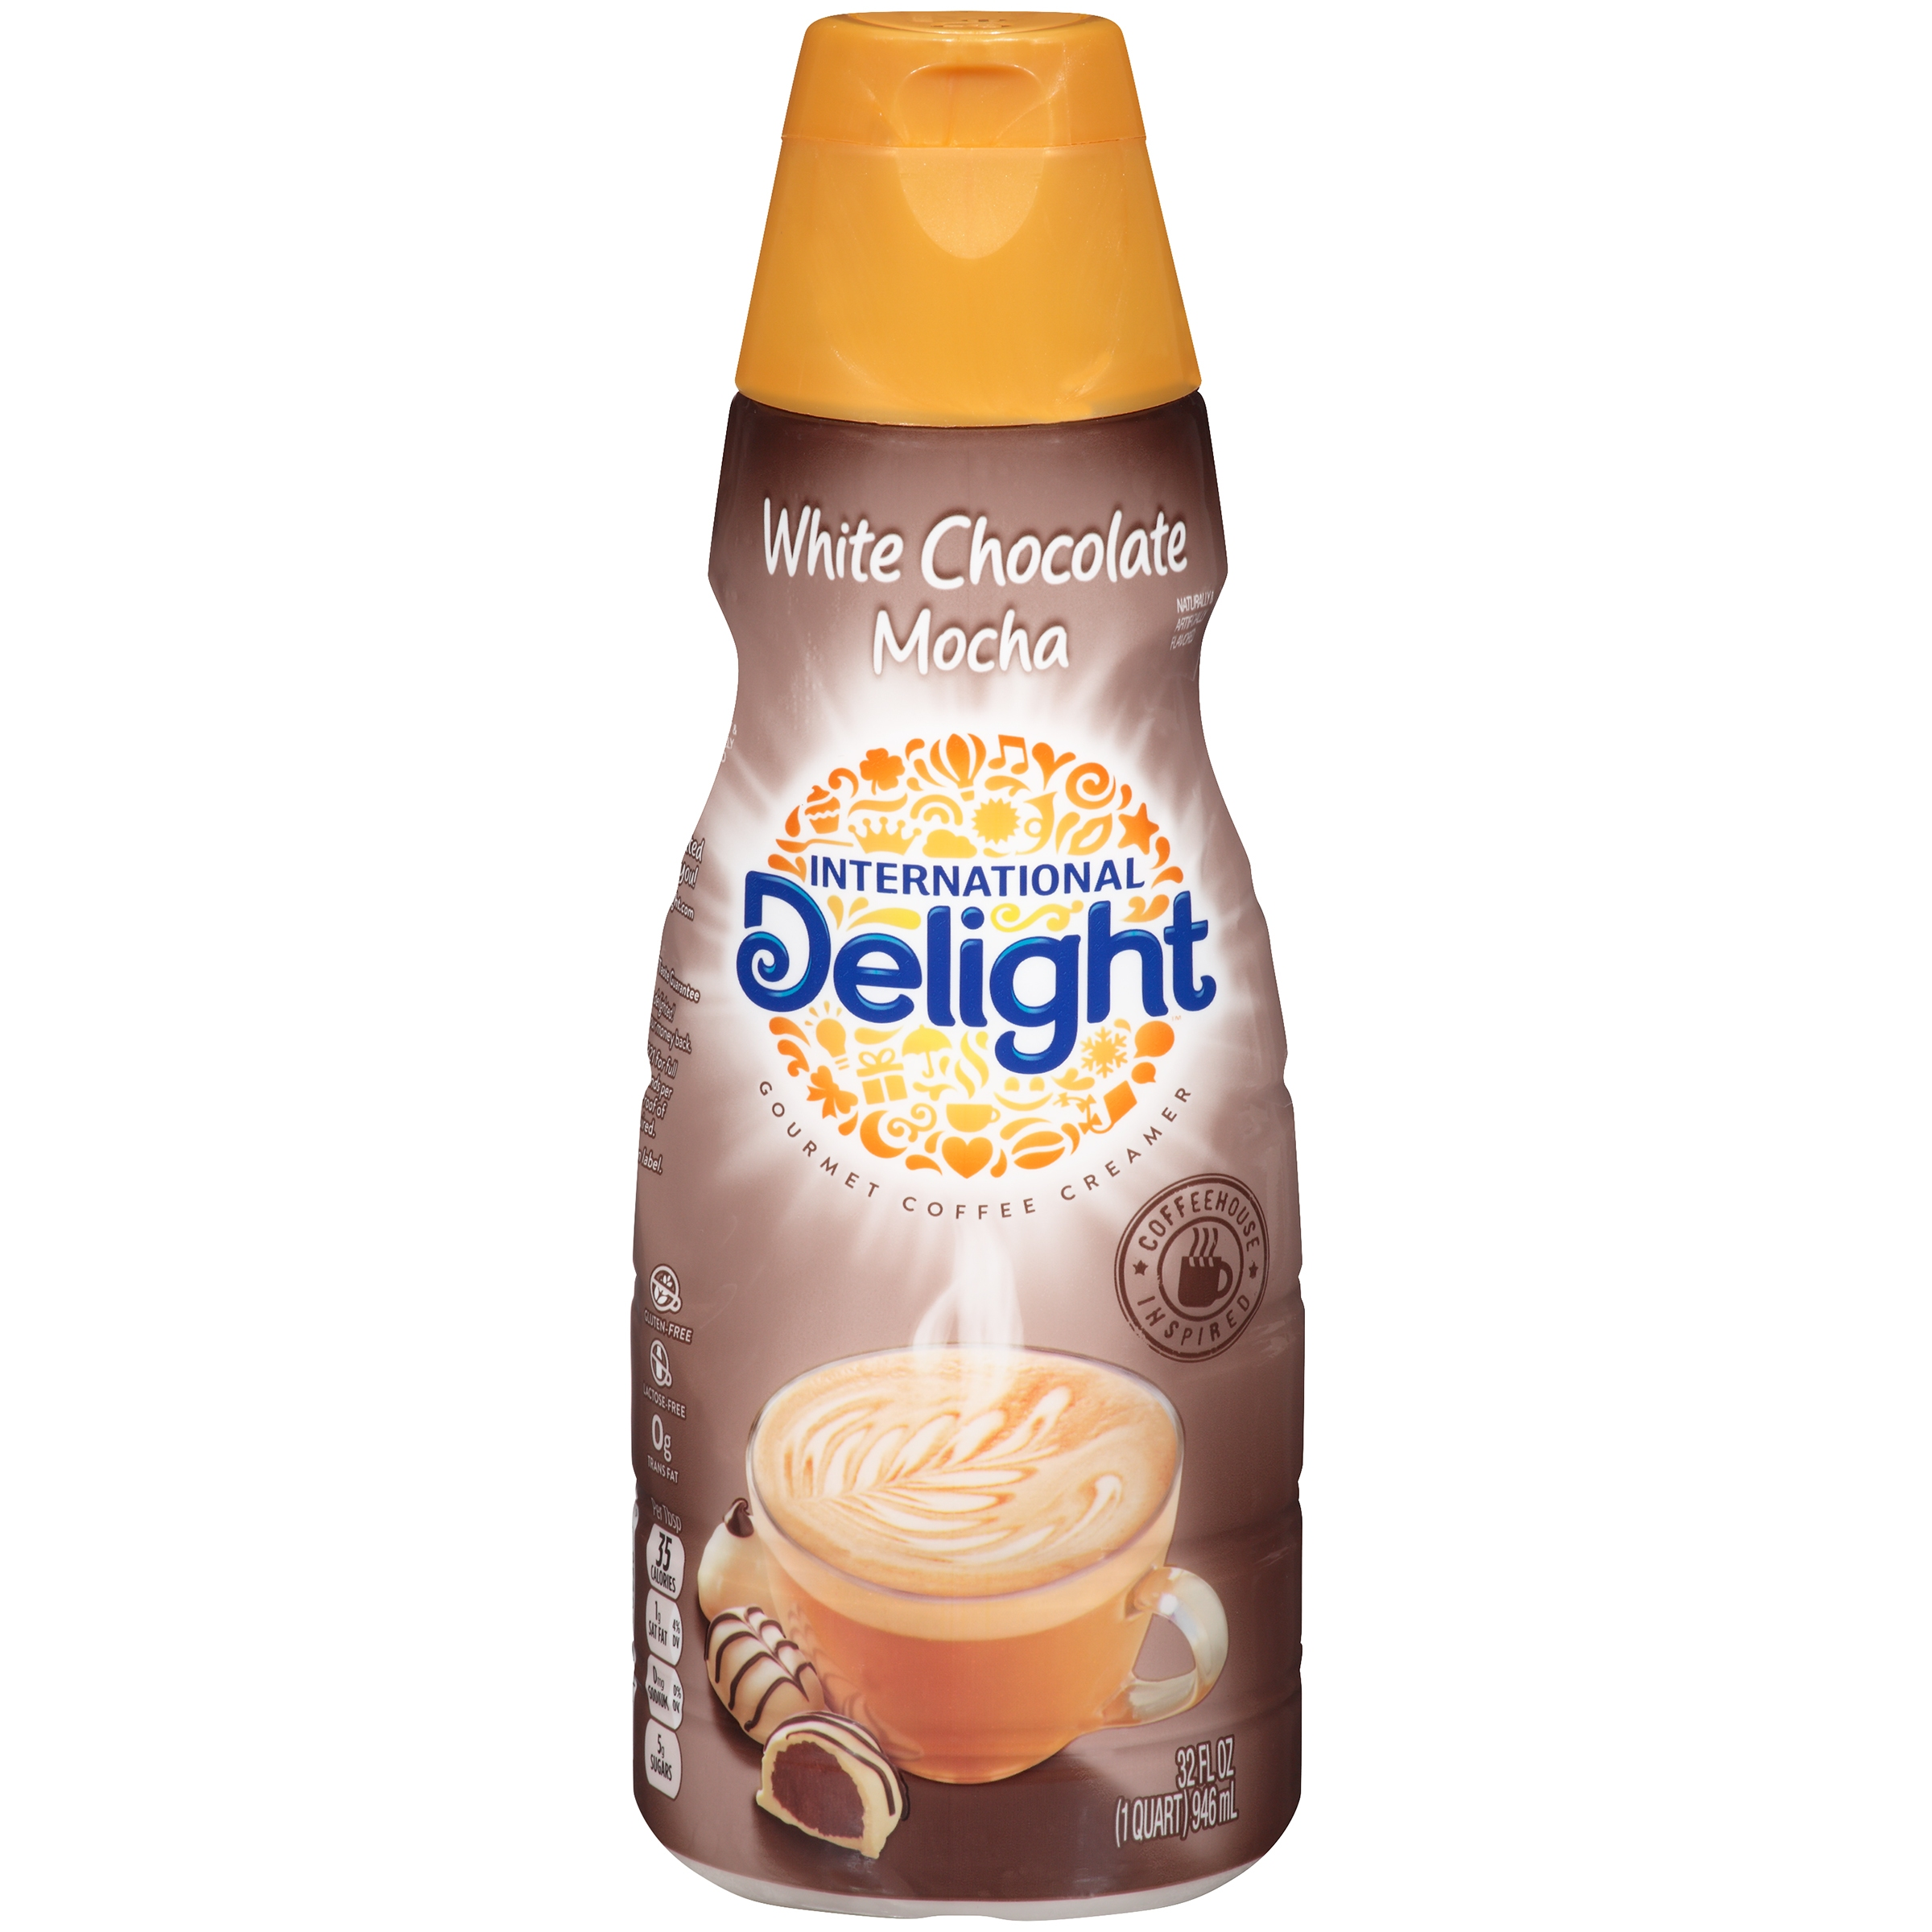 International Delight Coffee House Inspirations White Chocolate Mocha Coffee Creamer, 32 oz